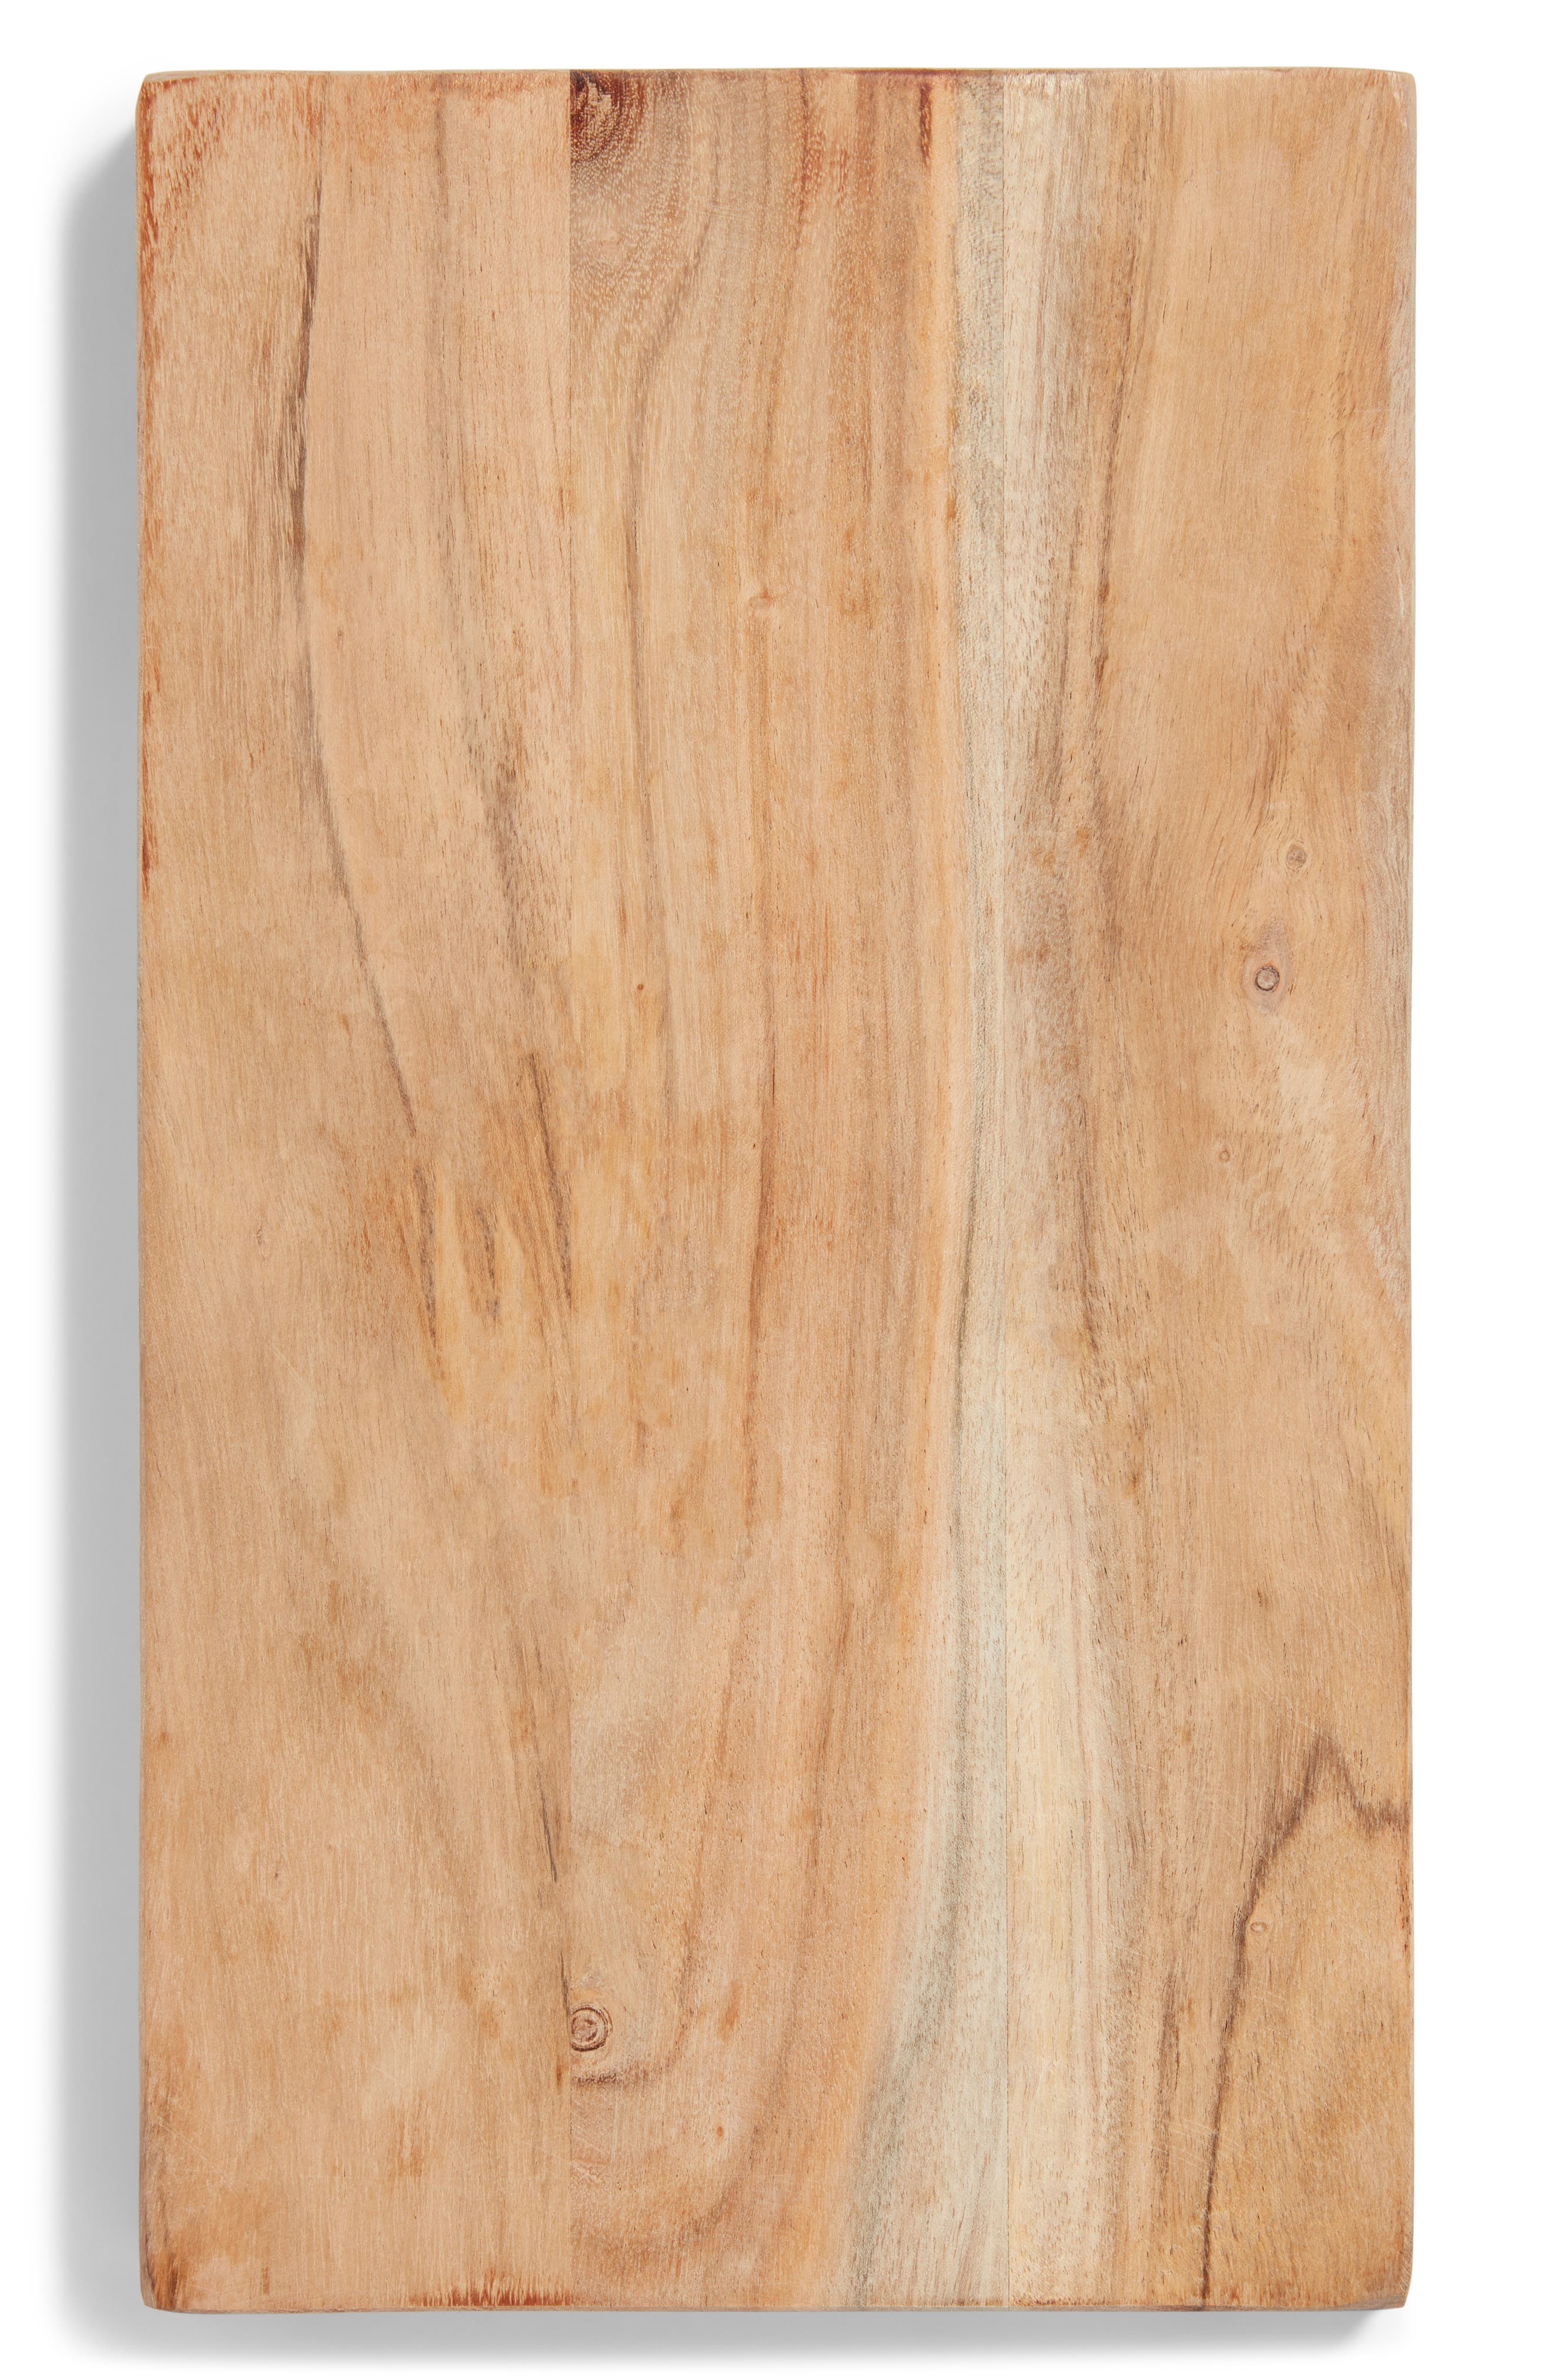 Blue Marble & Mango Wood Reversible Serving Board,                             Alternate thumbnail 2, color,                             200